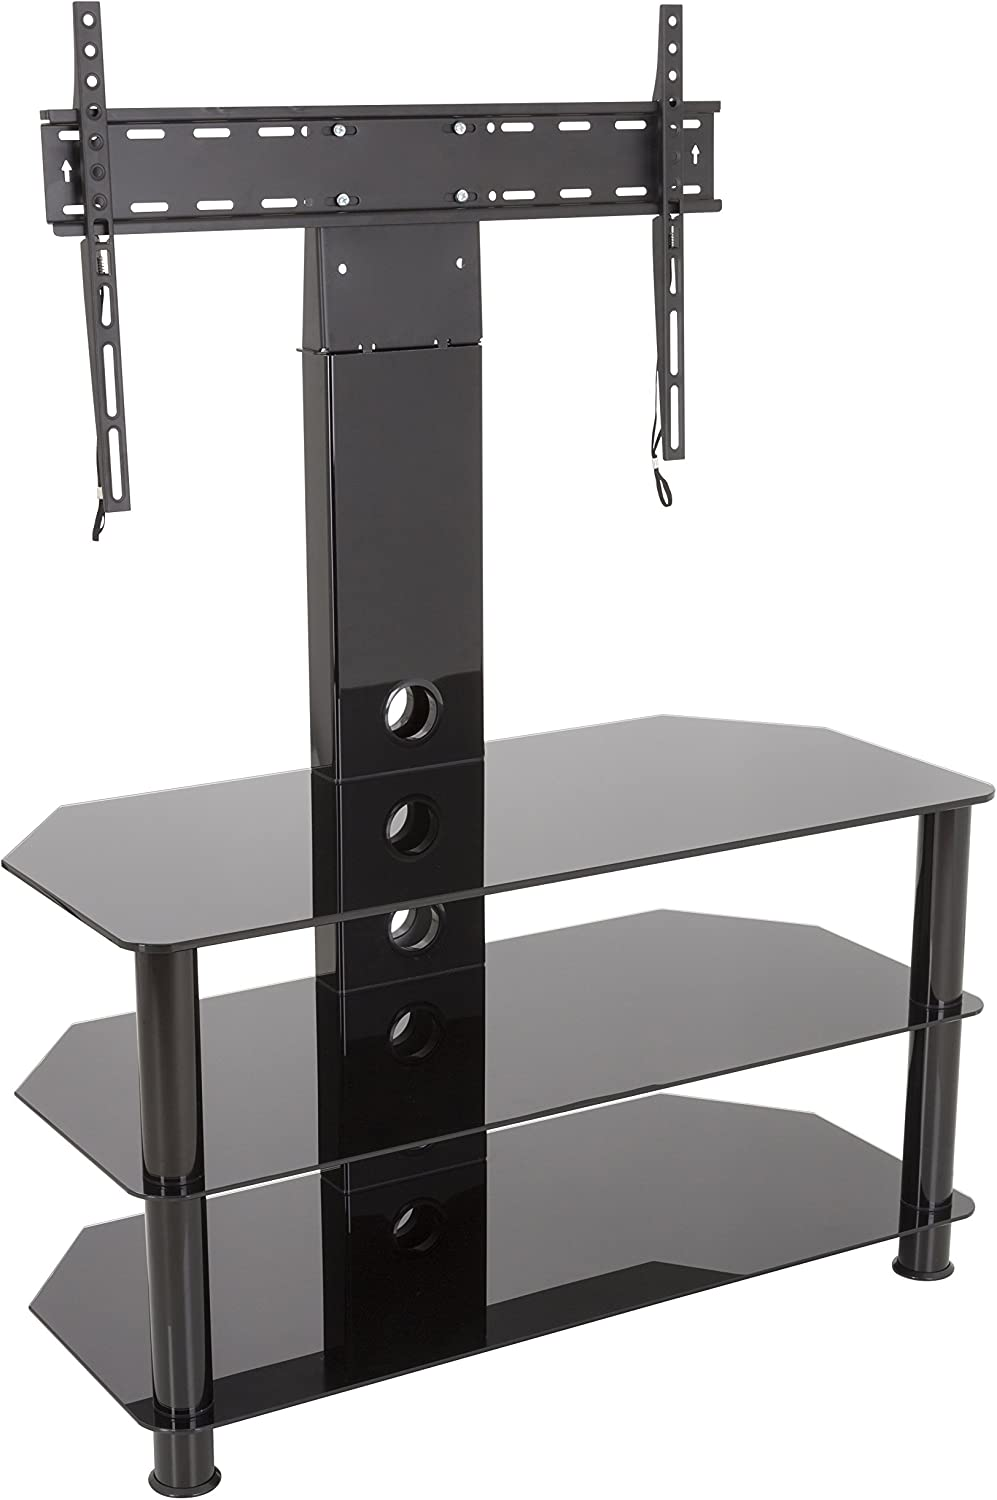 AVF SDCL900BB-A Stand with TV Mount for TVs up to 60-inch, Black Glass, Black Legs